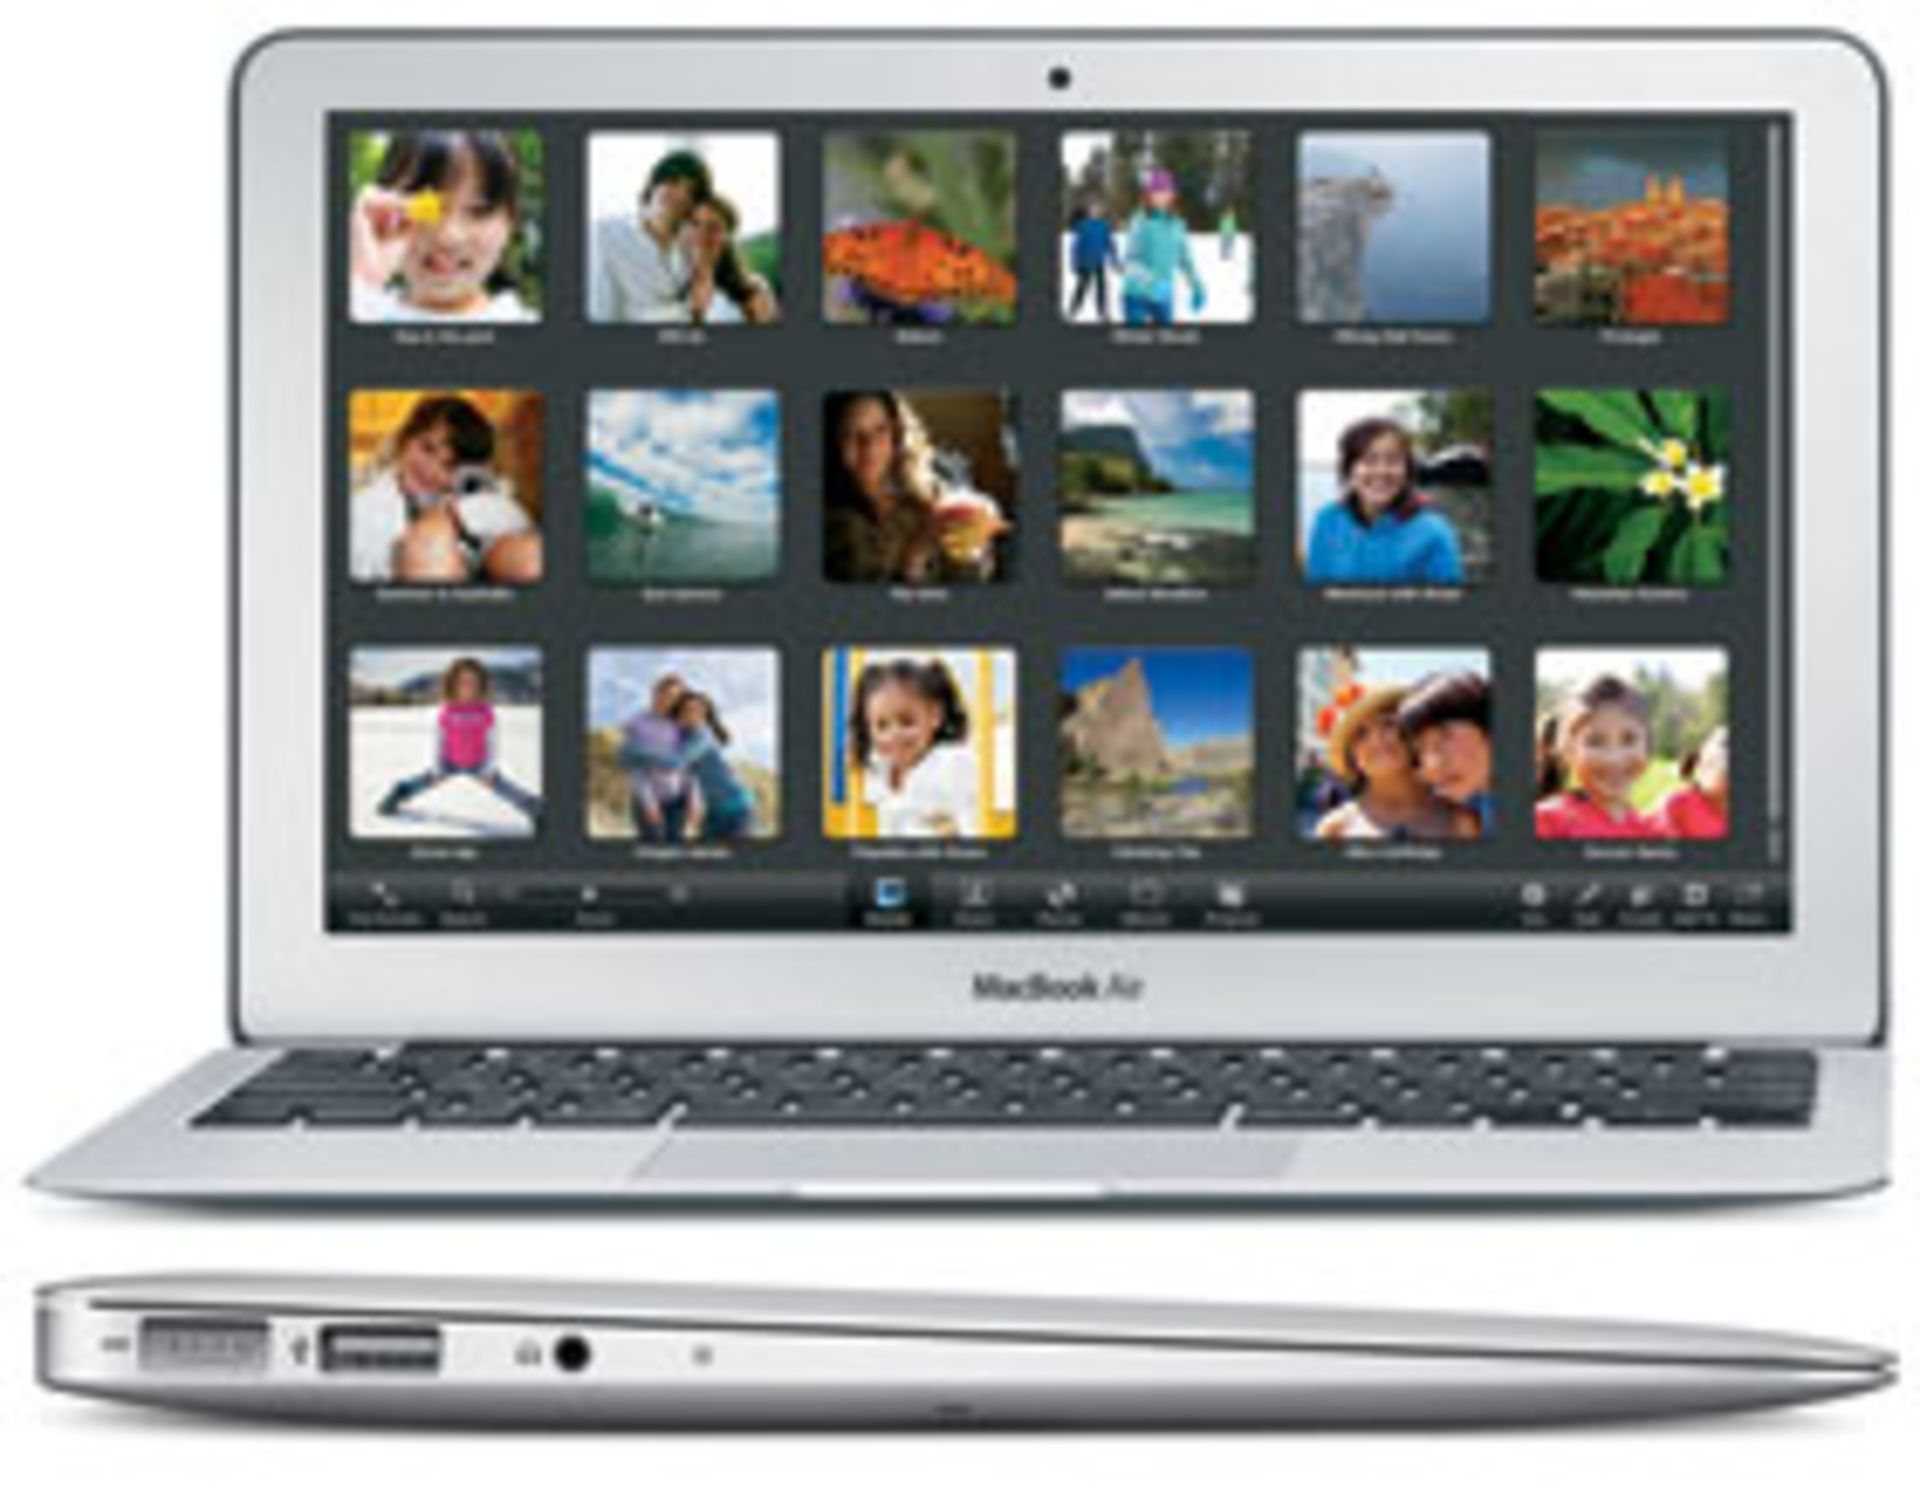 Lot 60048 - V Grade B Macbook Air 11.6 Inch Core 2 Duo - 64GB SSD - A1370 - Available Approx 7 Working Days